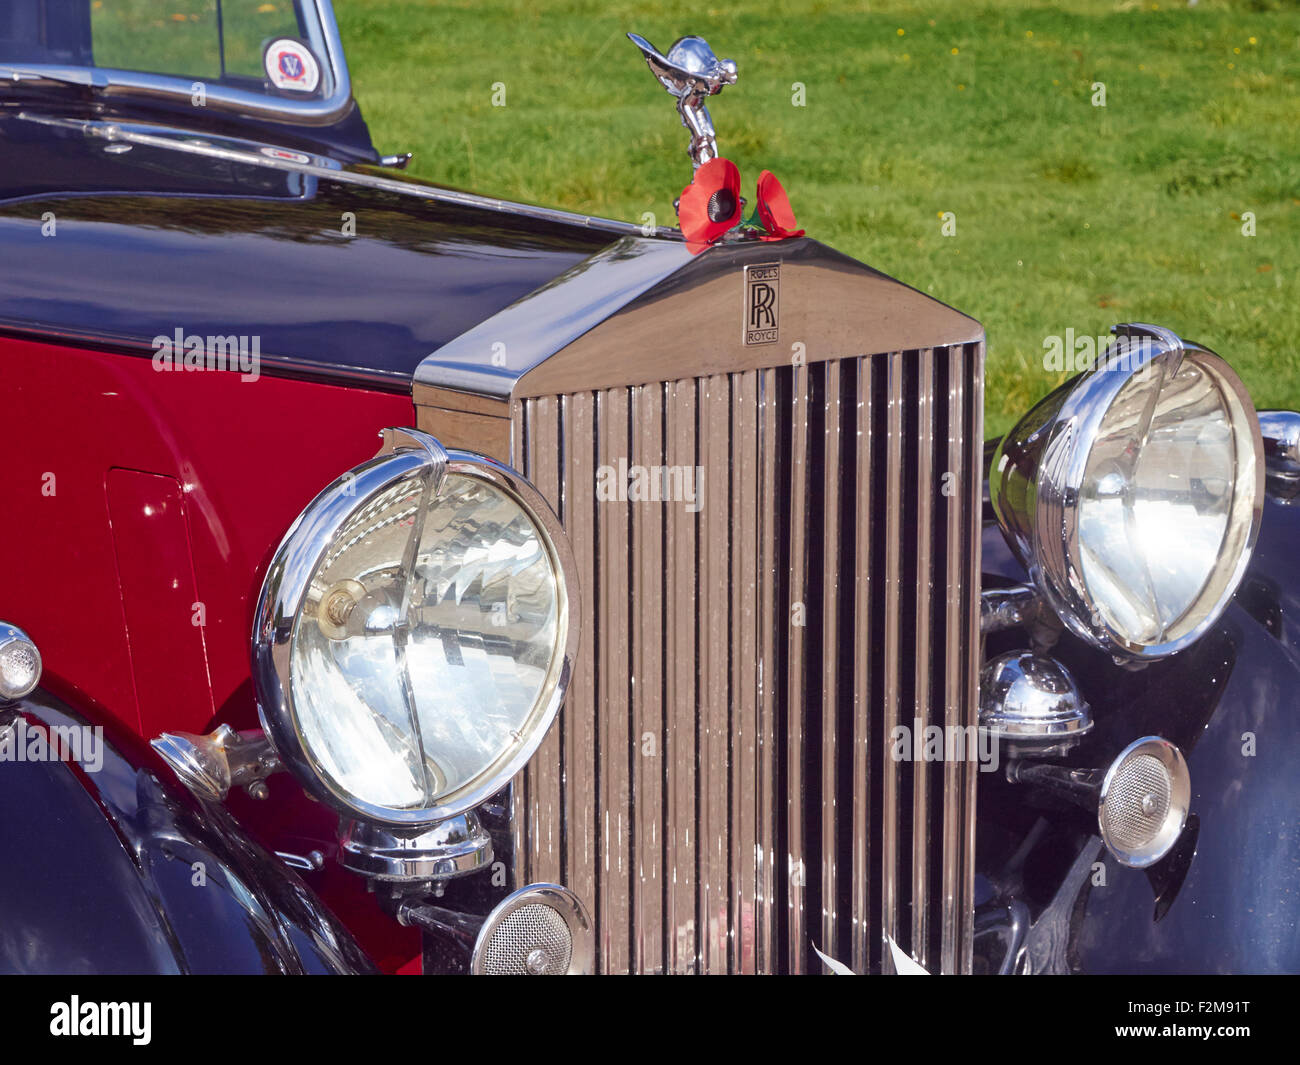 Flying Lady mascot, distinctive radiator grill and large headlamps of a 1938 Rolls Royce car. - Stock Image